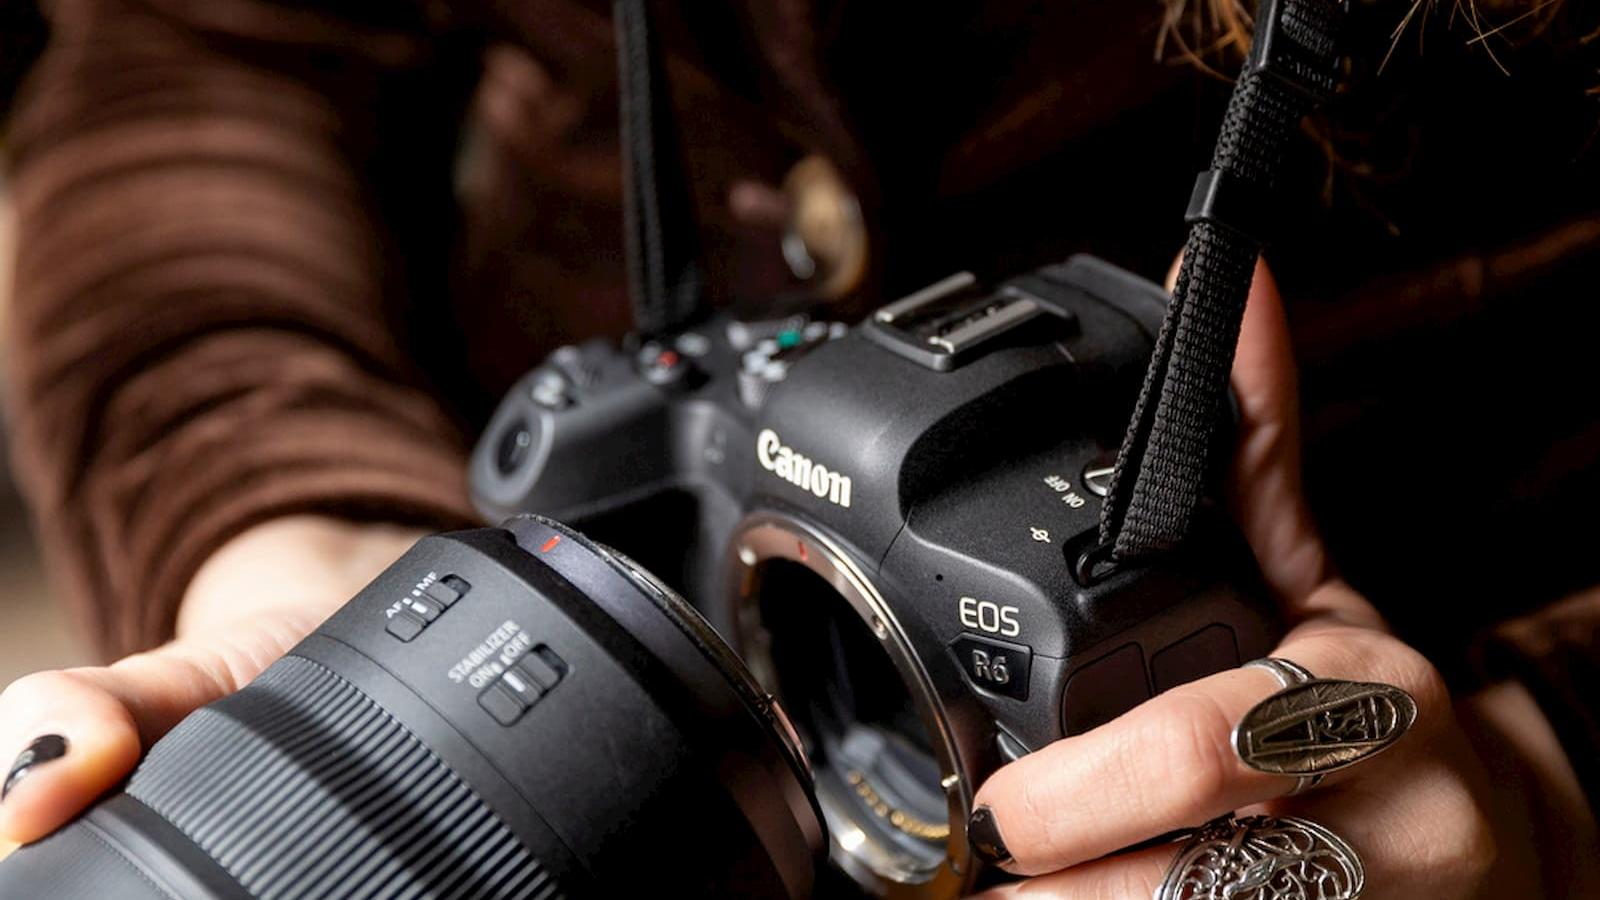 Canon announce the launch of two advanced full frame mirrorless camera EOS R5 and EOS R6